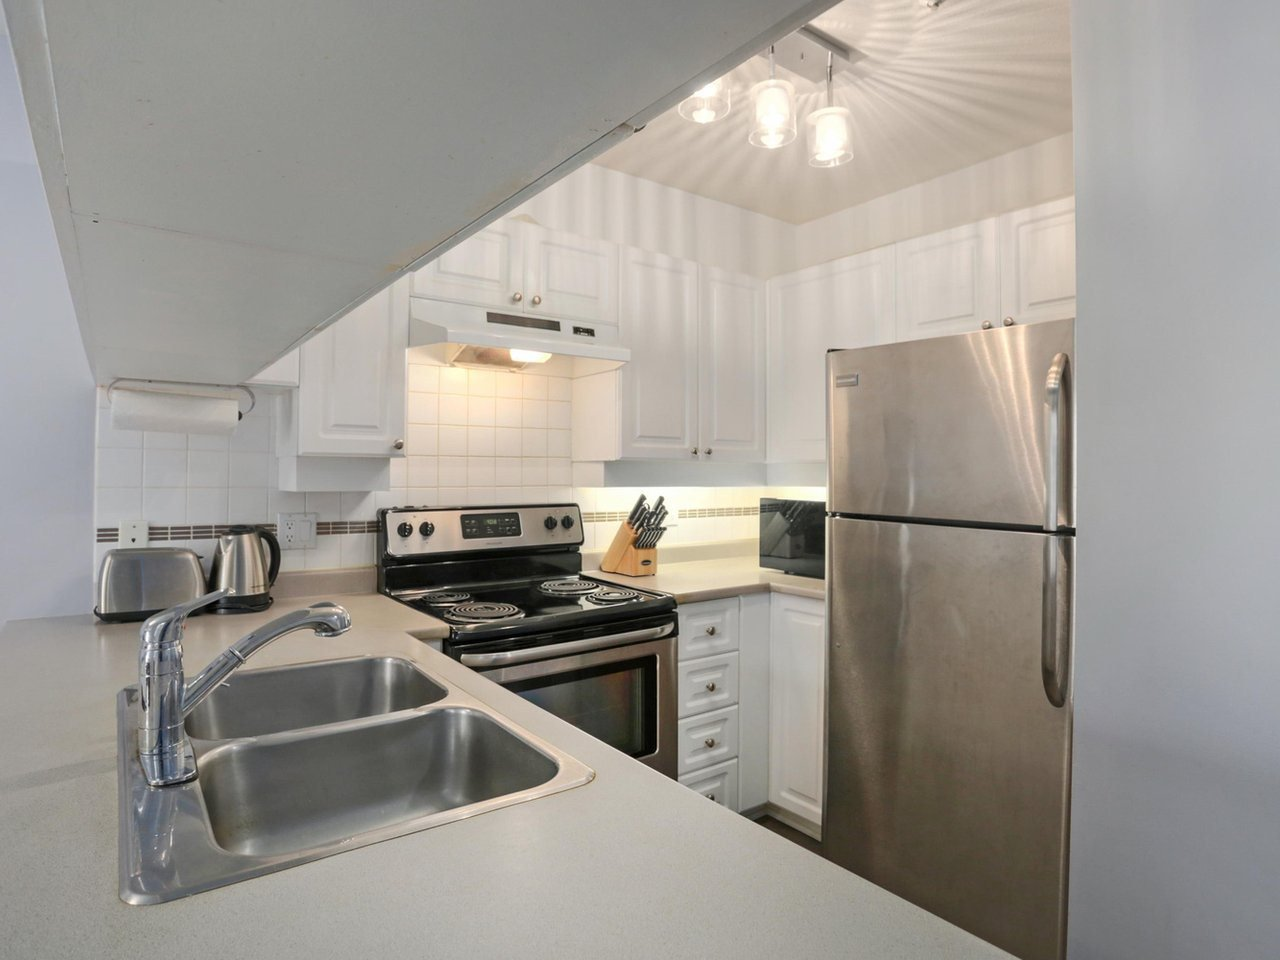 """Main Photo: 408 135 ELEVENTH Street in New Westminster: Uptown NW Condo for sale in """"QUEENS TERRACE"""" : MLS®# R2445118"""